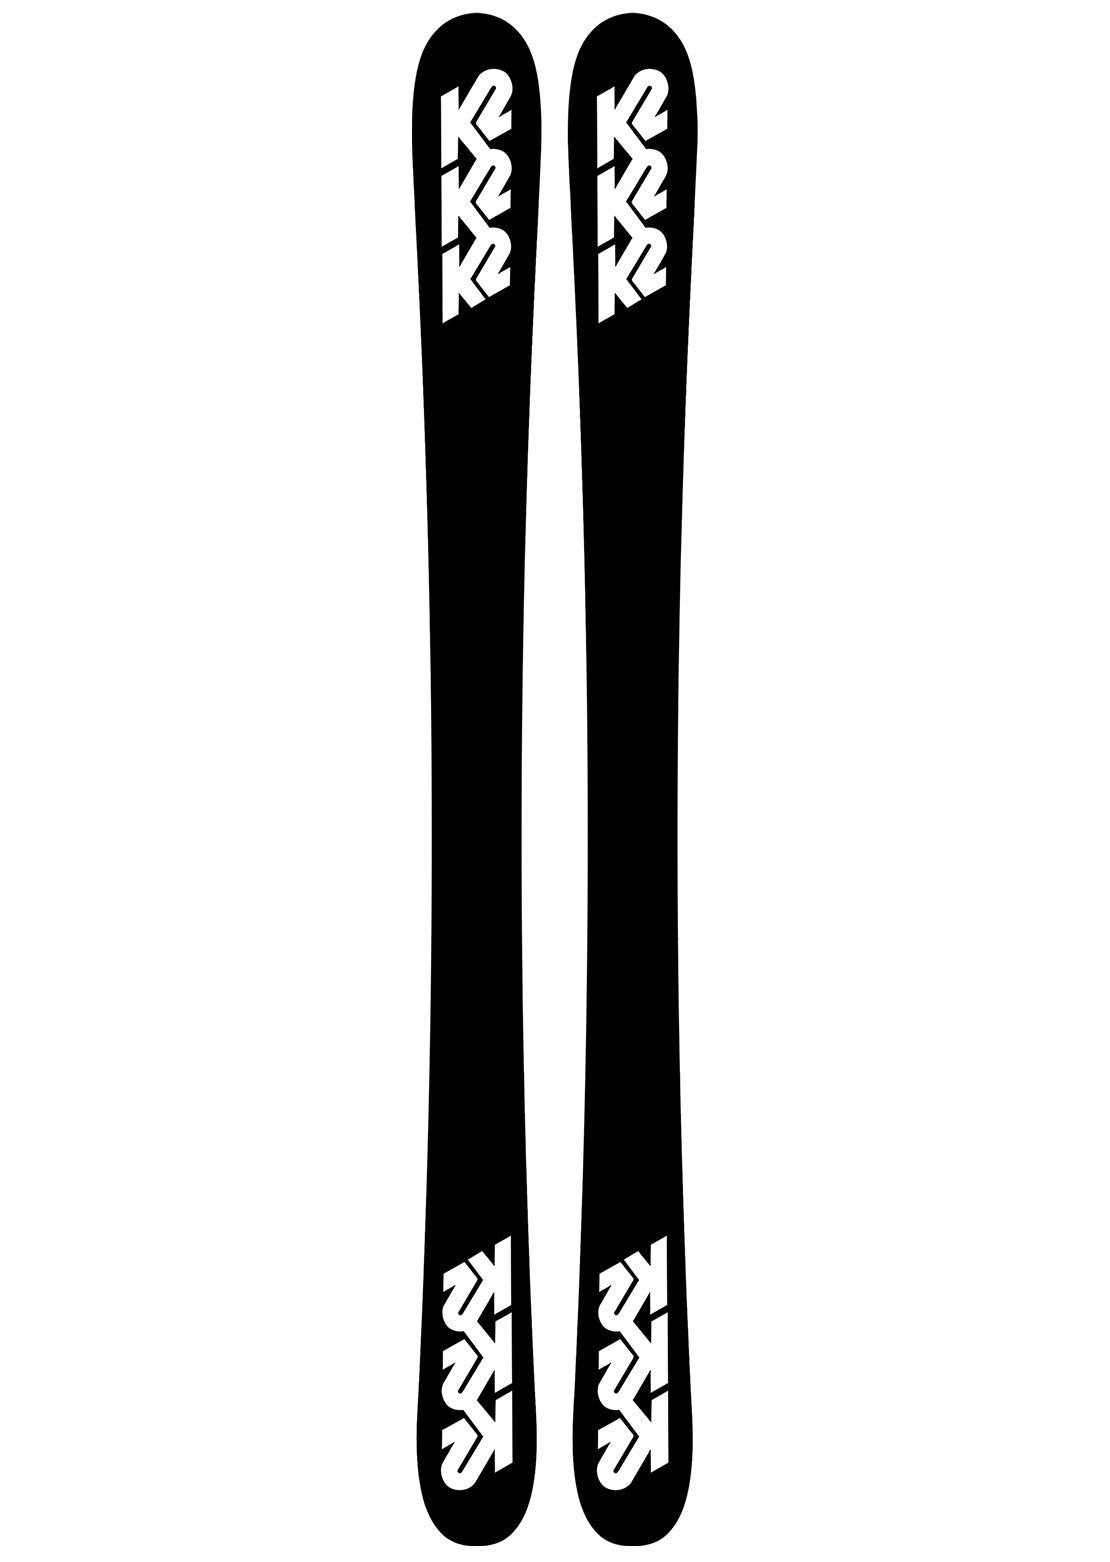 K2 Junior Juvy + FDT Jr 7.0 Ski Set - 129 cm Multi